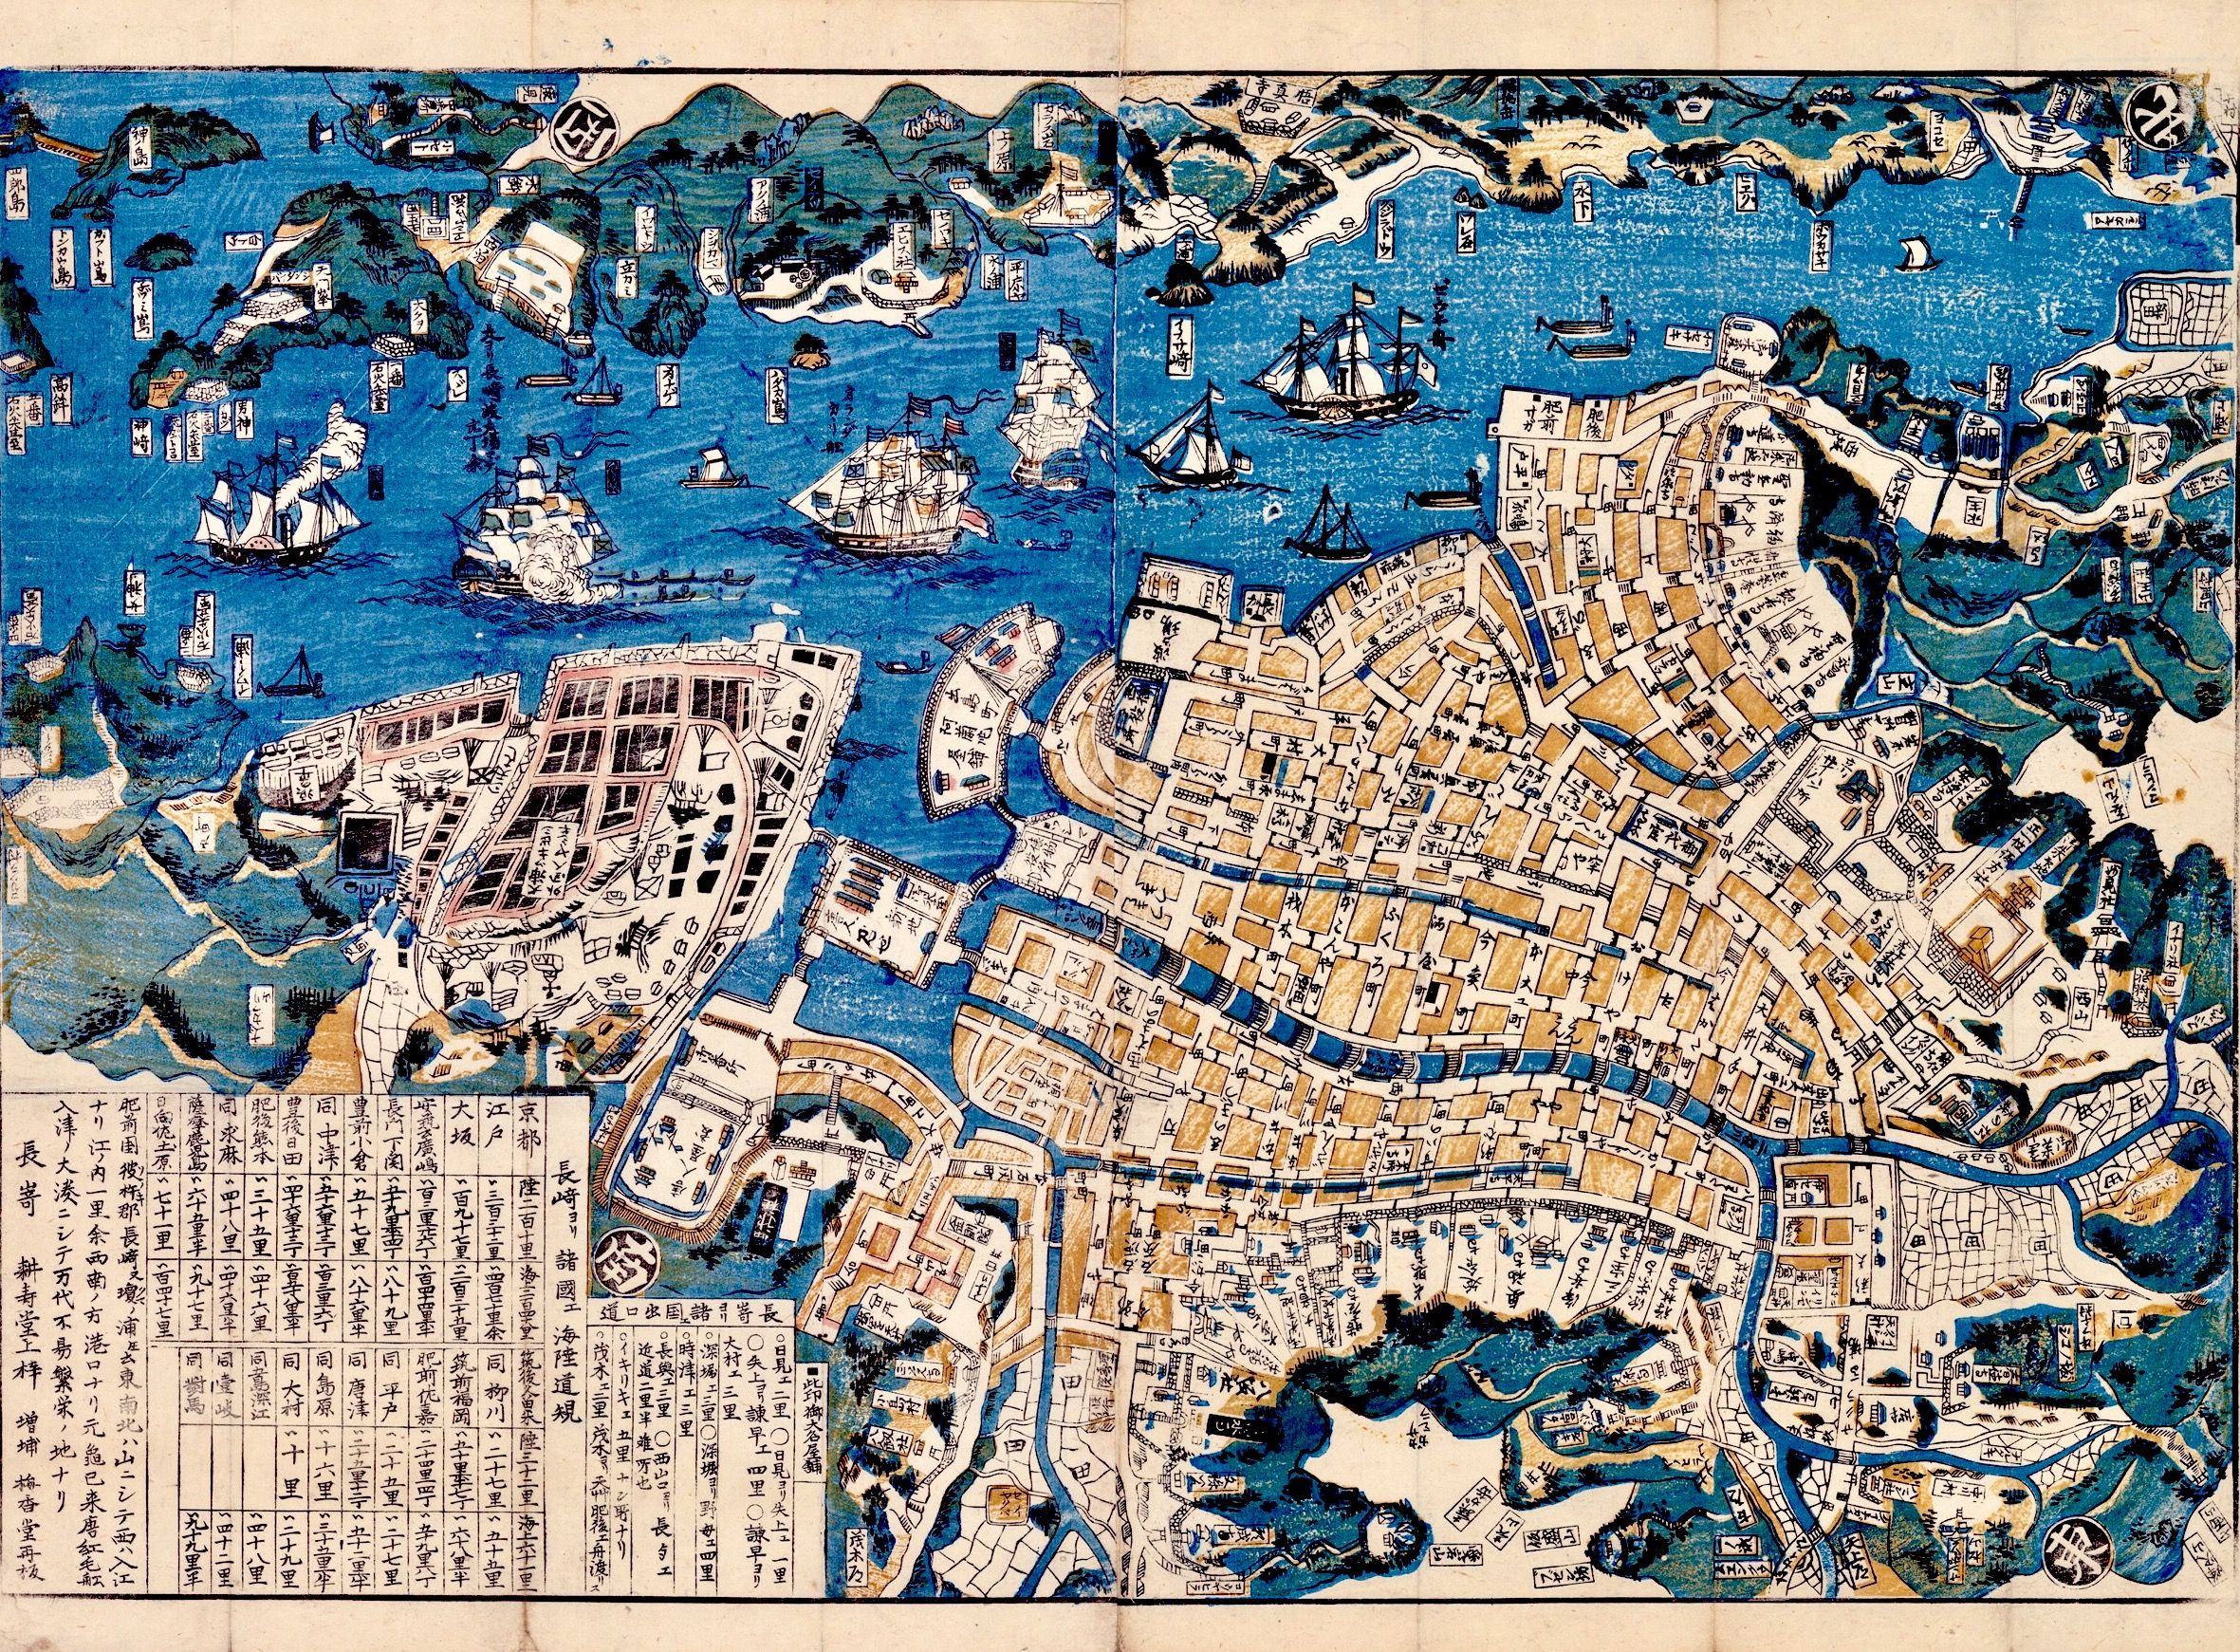 Nagasaki On World Map.1860 Nagasaki Map Shinsen Hizen Nagasaki Zu Creator Unknown